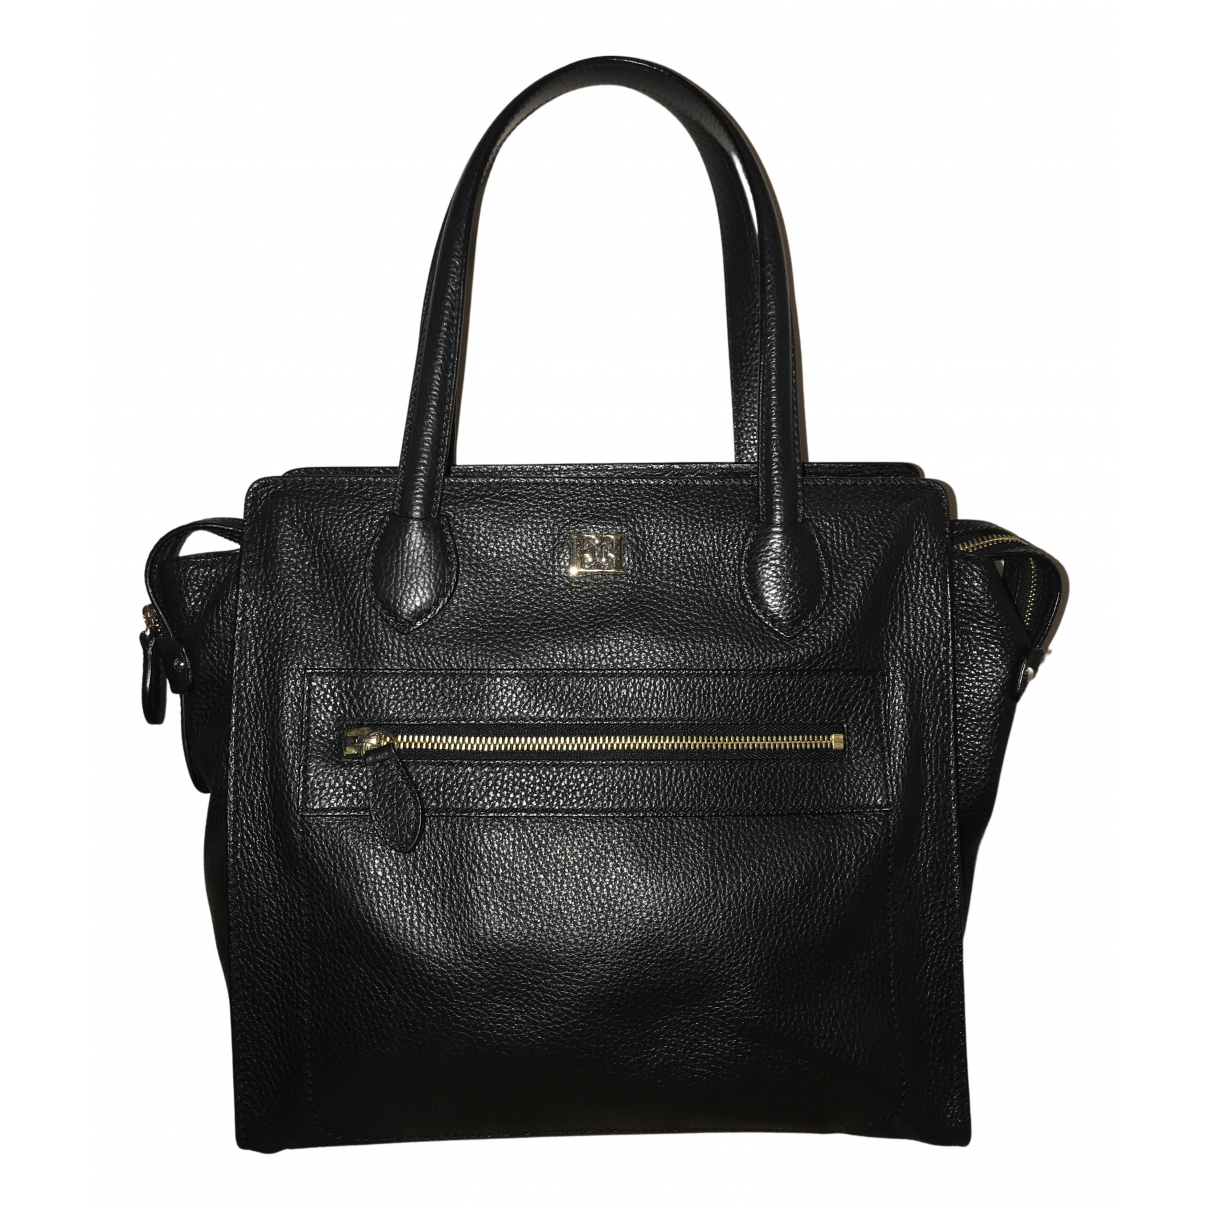 Escada N Black Leather handbag for Women N